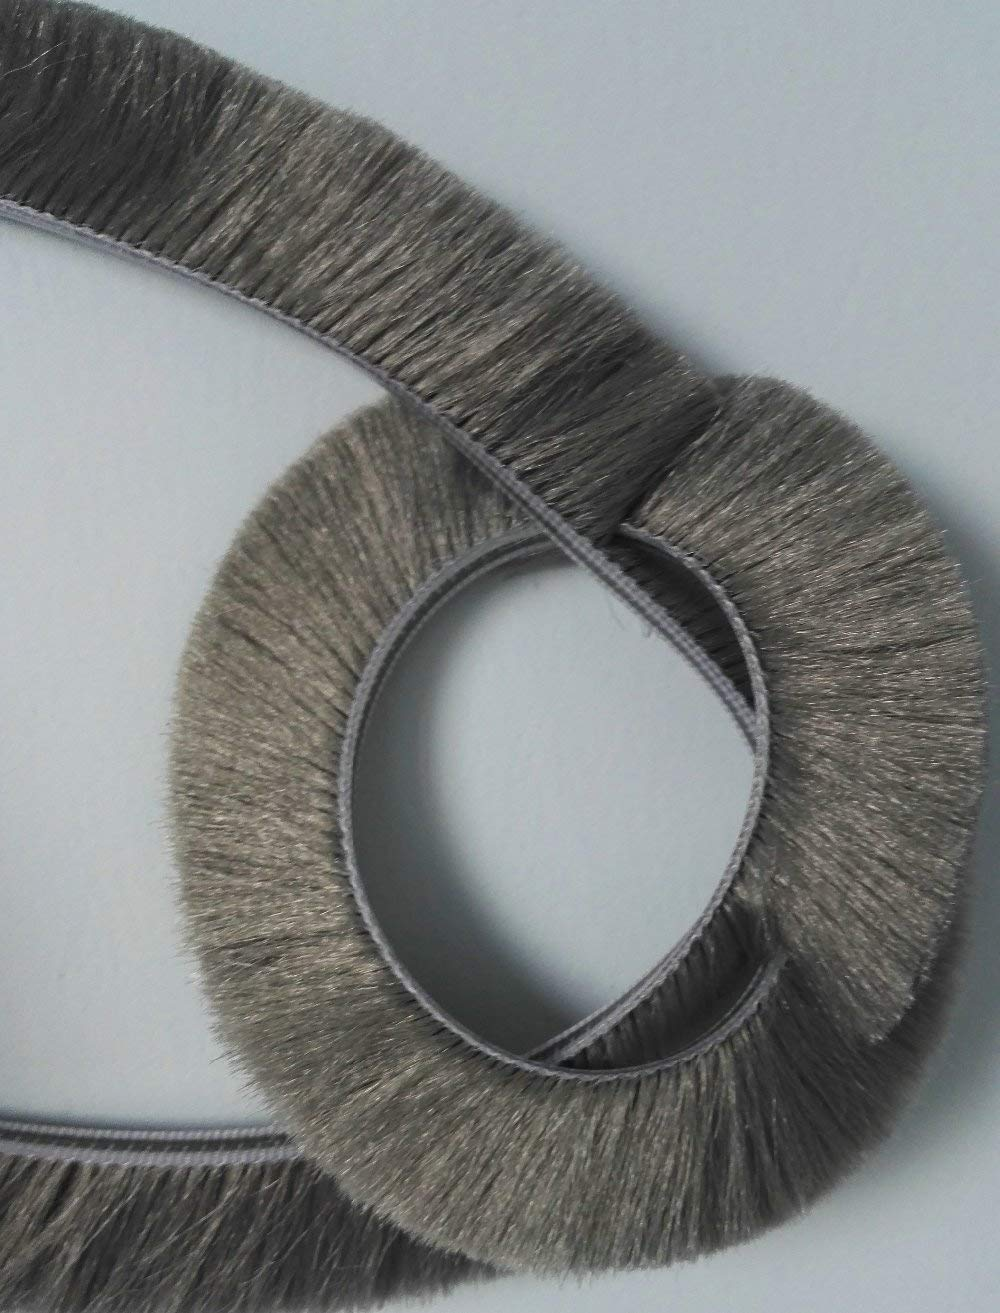 Sliding Winow Door Seal Brush Felt Draught Excluder Insert Wool Pile Weather Stripping Weather Stripping Weatherproofing 10 Meters 32.8 Feet Gray (11mm x 5mm x 10meters, silver gray) Shanghai Alina Trading Company Ltd.